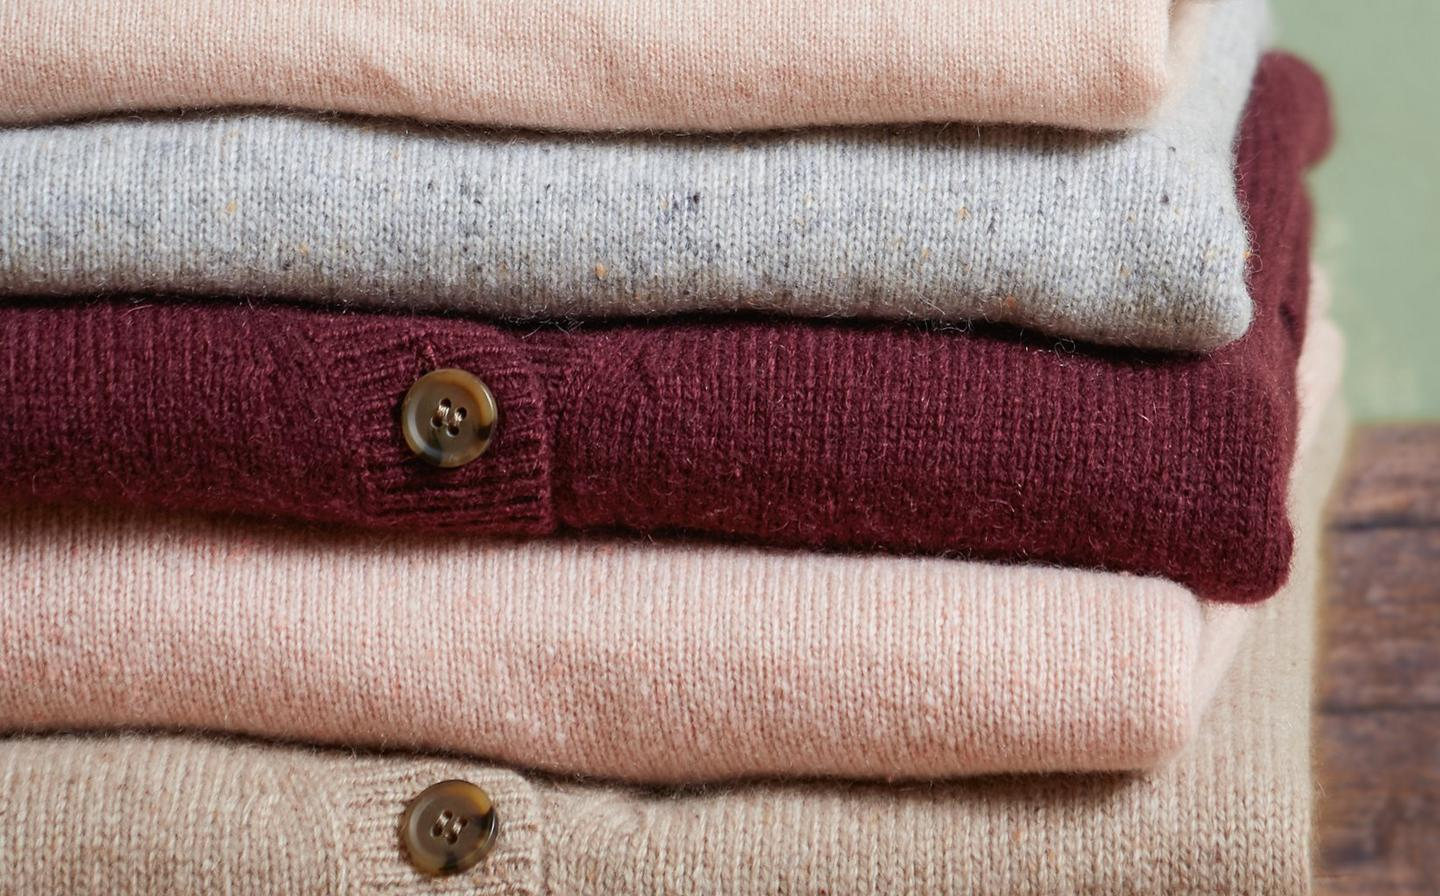 A neatly folded pile of beautifully soft cashmere knitwear from FatFace